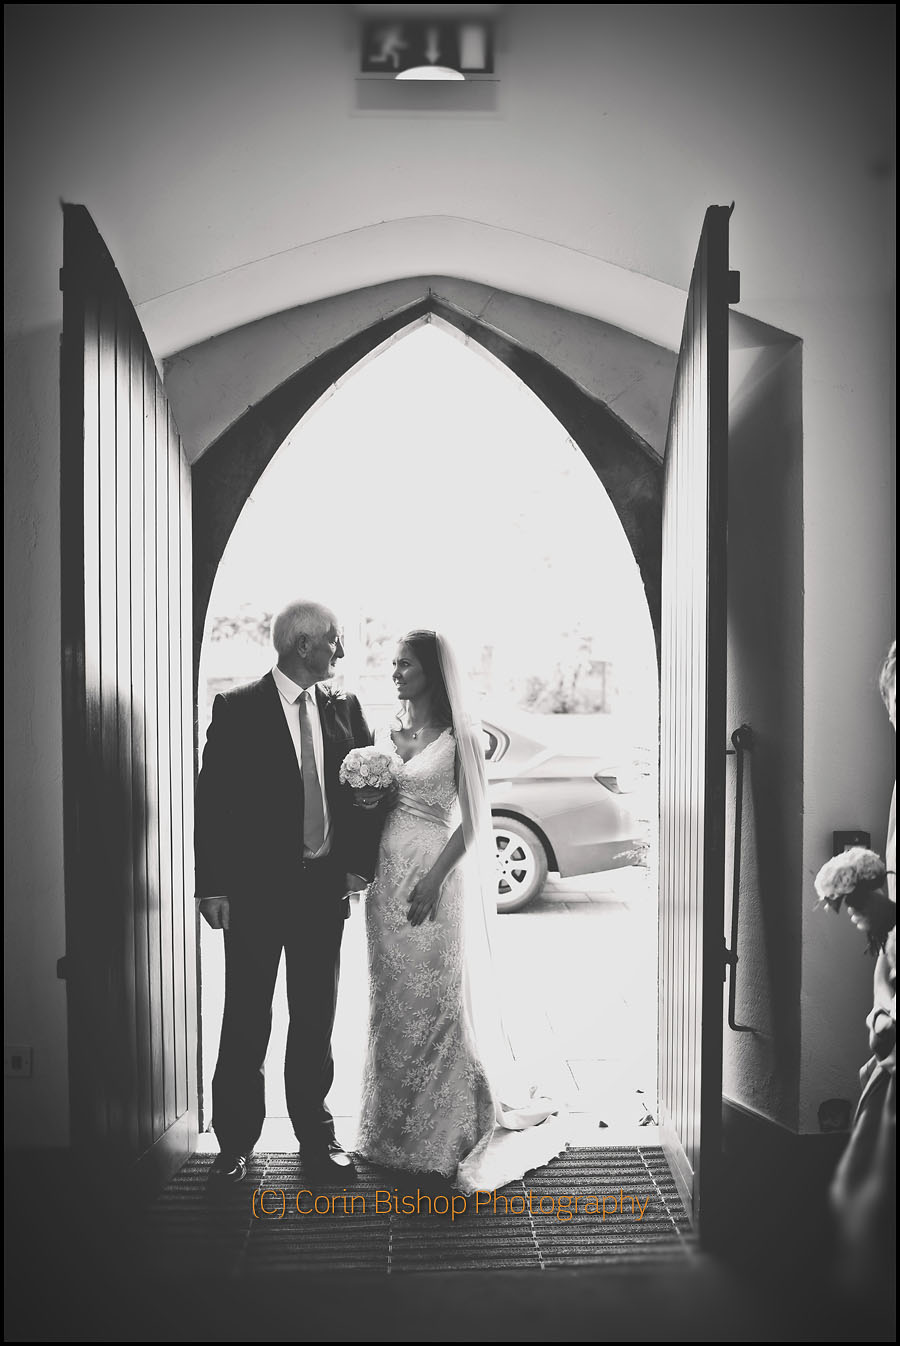 Lovely moment between the Bride and her Father before walking down the aisle